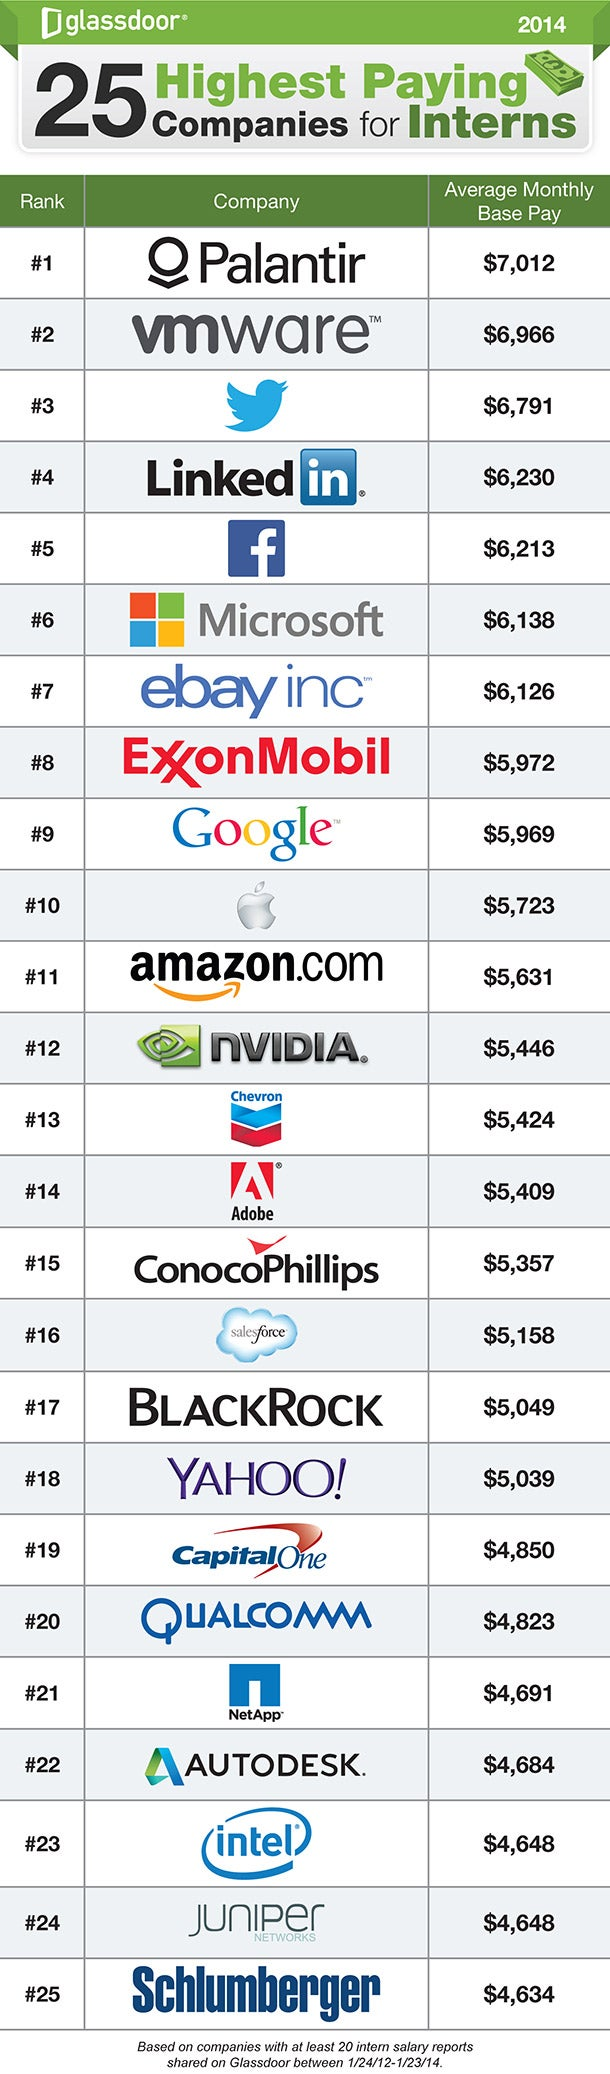 The 25 Highest-Paying Companies for Interns